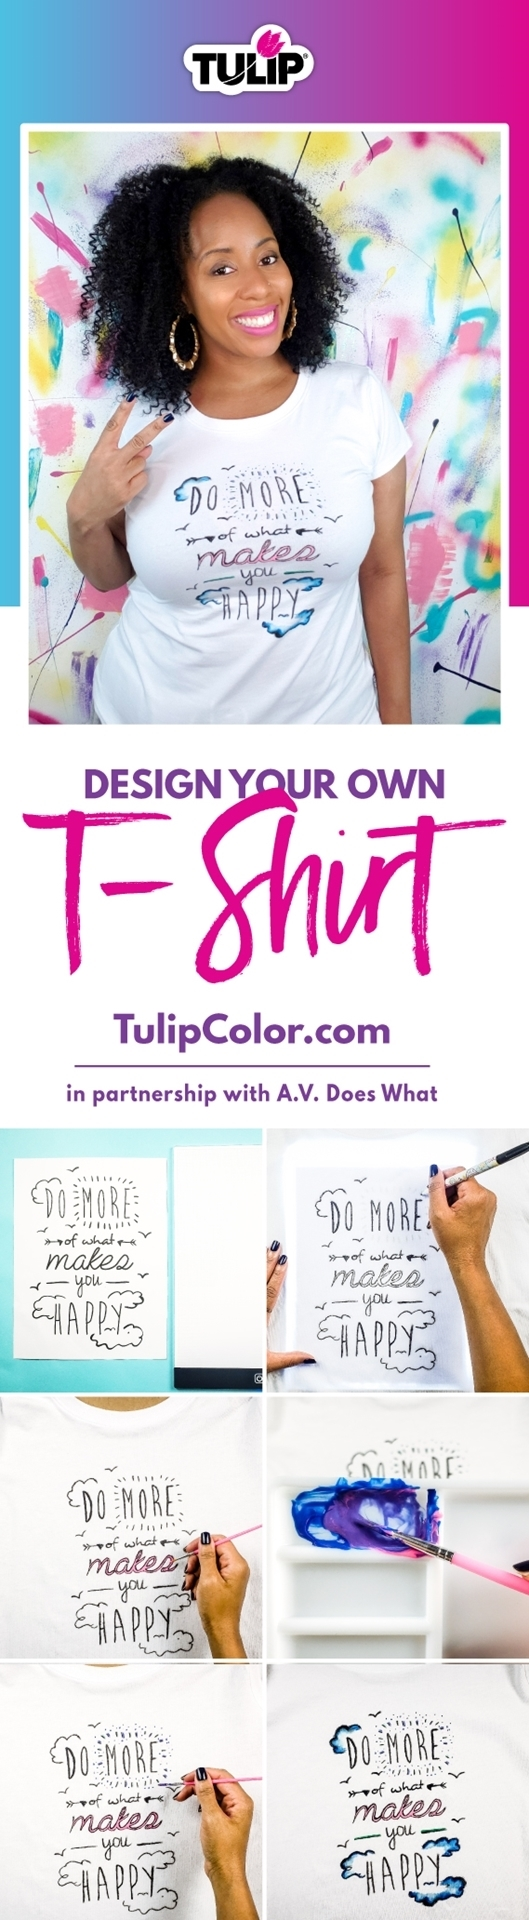 The Easiest Way to Design Your Own T-shirt